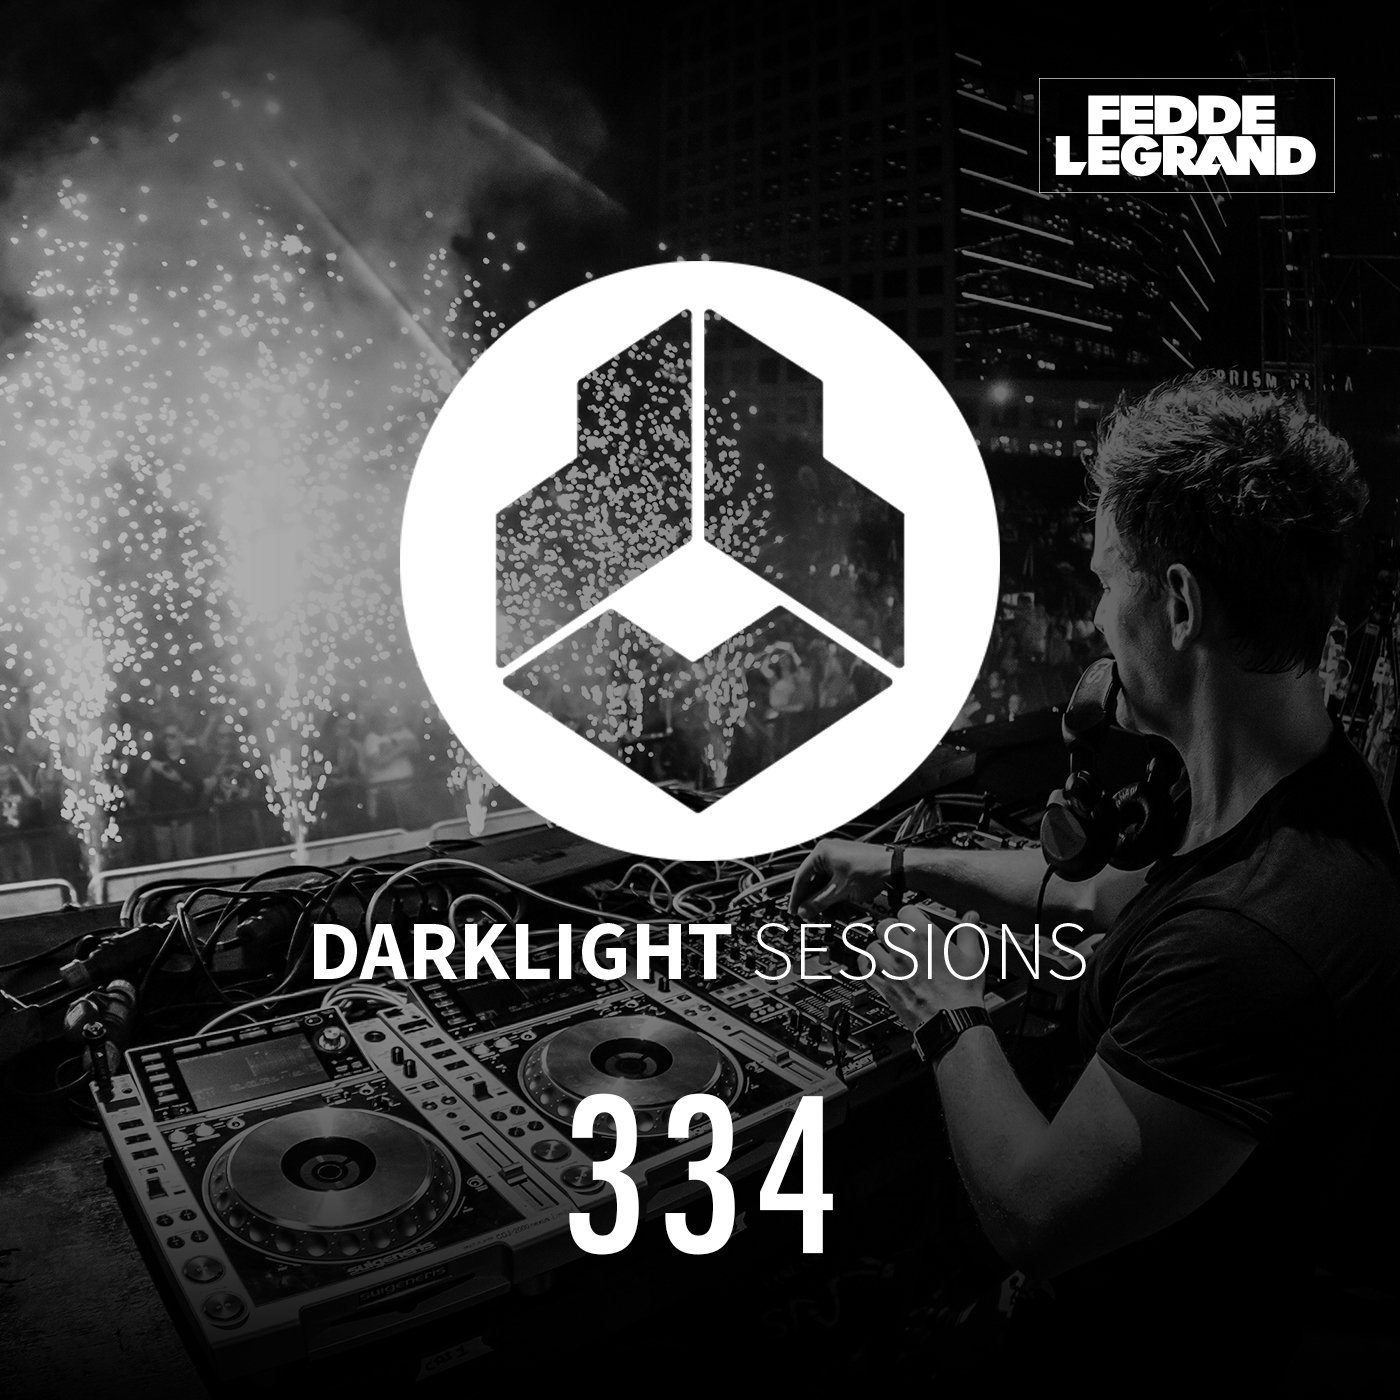 Darklight Sessions 334